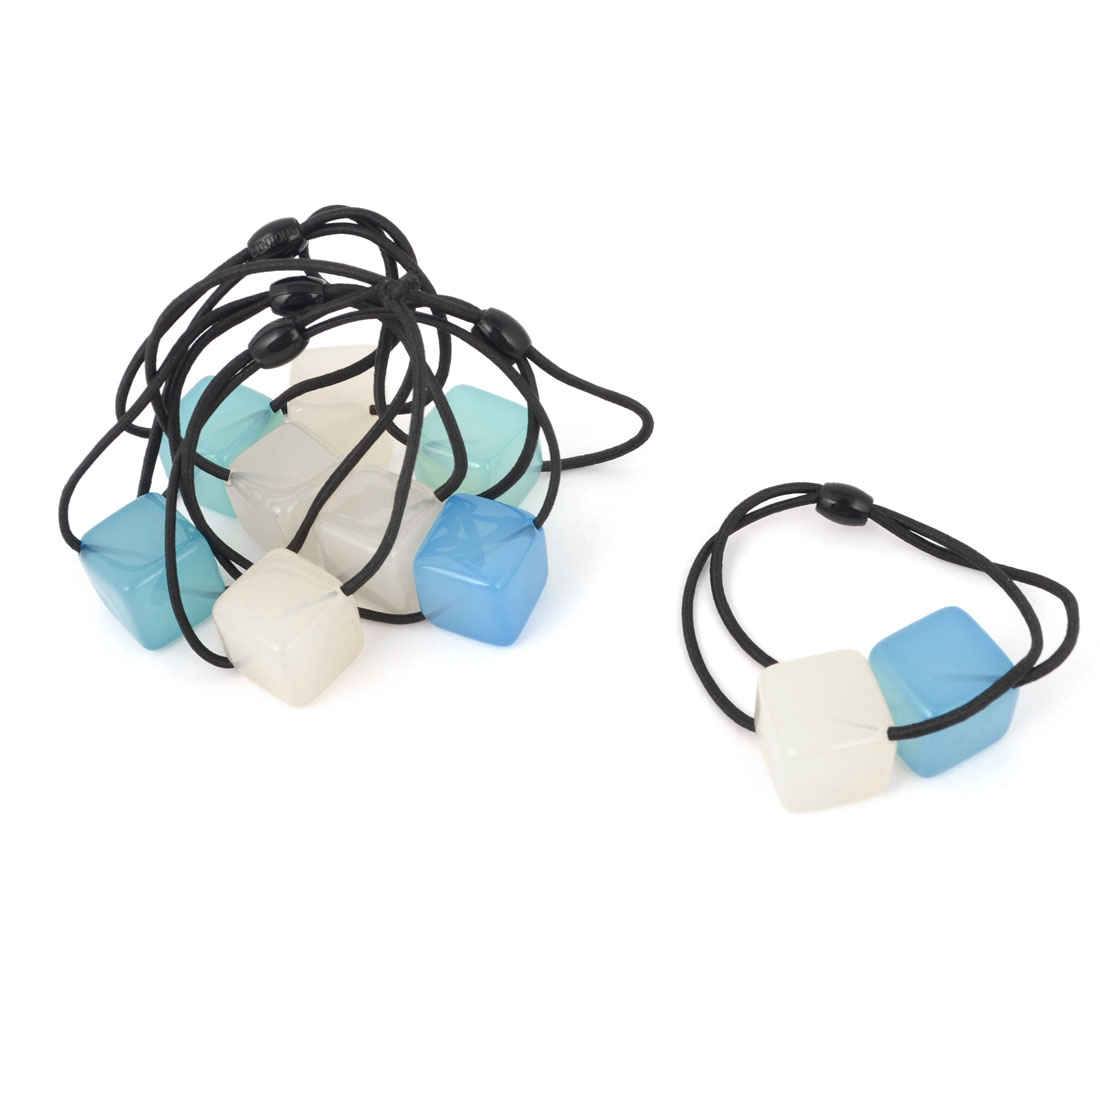 Lady Blue Beige Square Bead Decor Stretchy Hair Tie Ponytail Holder 5 PCS